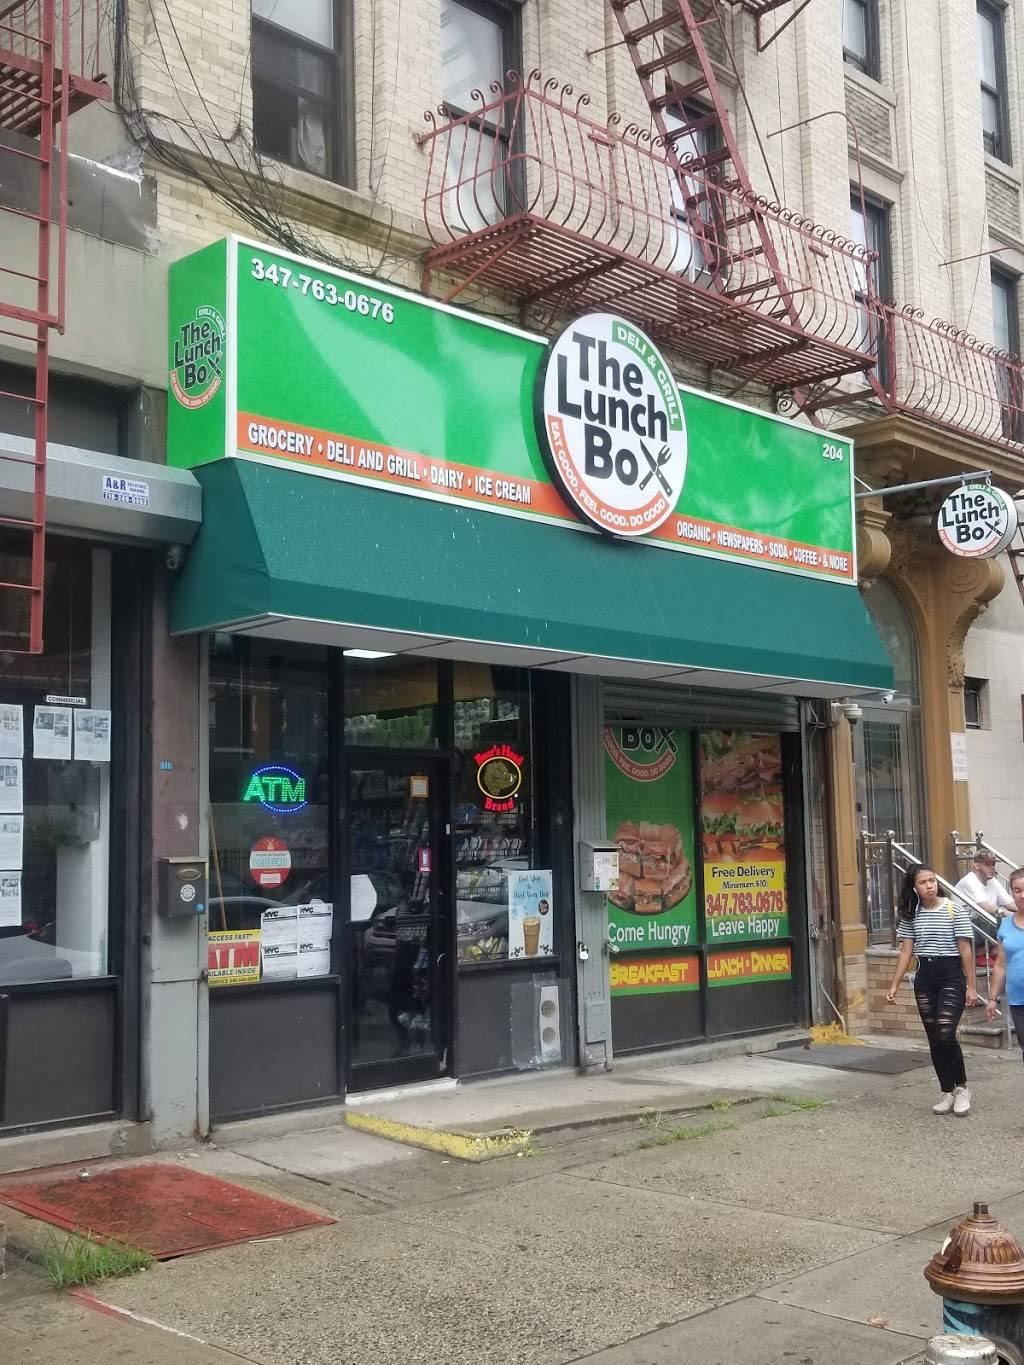 The Lunch Box (Deli And Grill) | restaurant | 204 Bushwick Ave, Brooklyn, NY 11206, USA | 3477630676 OR +1 347-763-0676